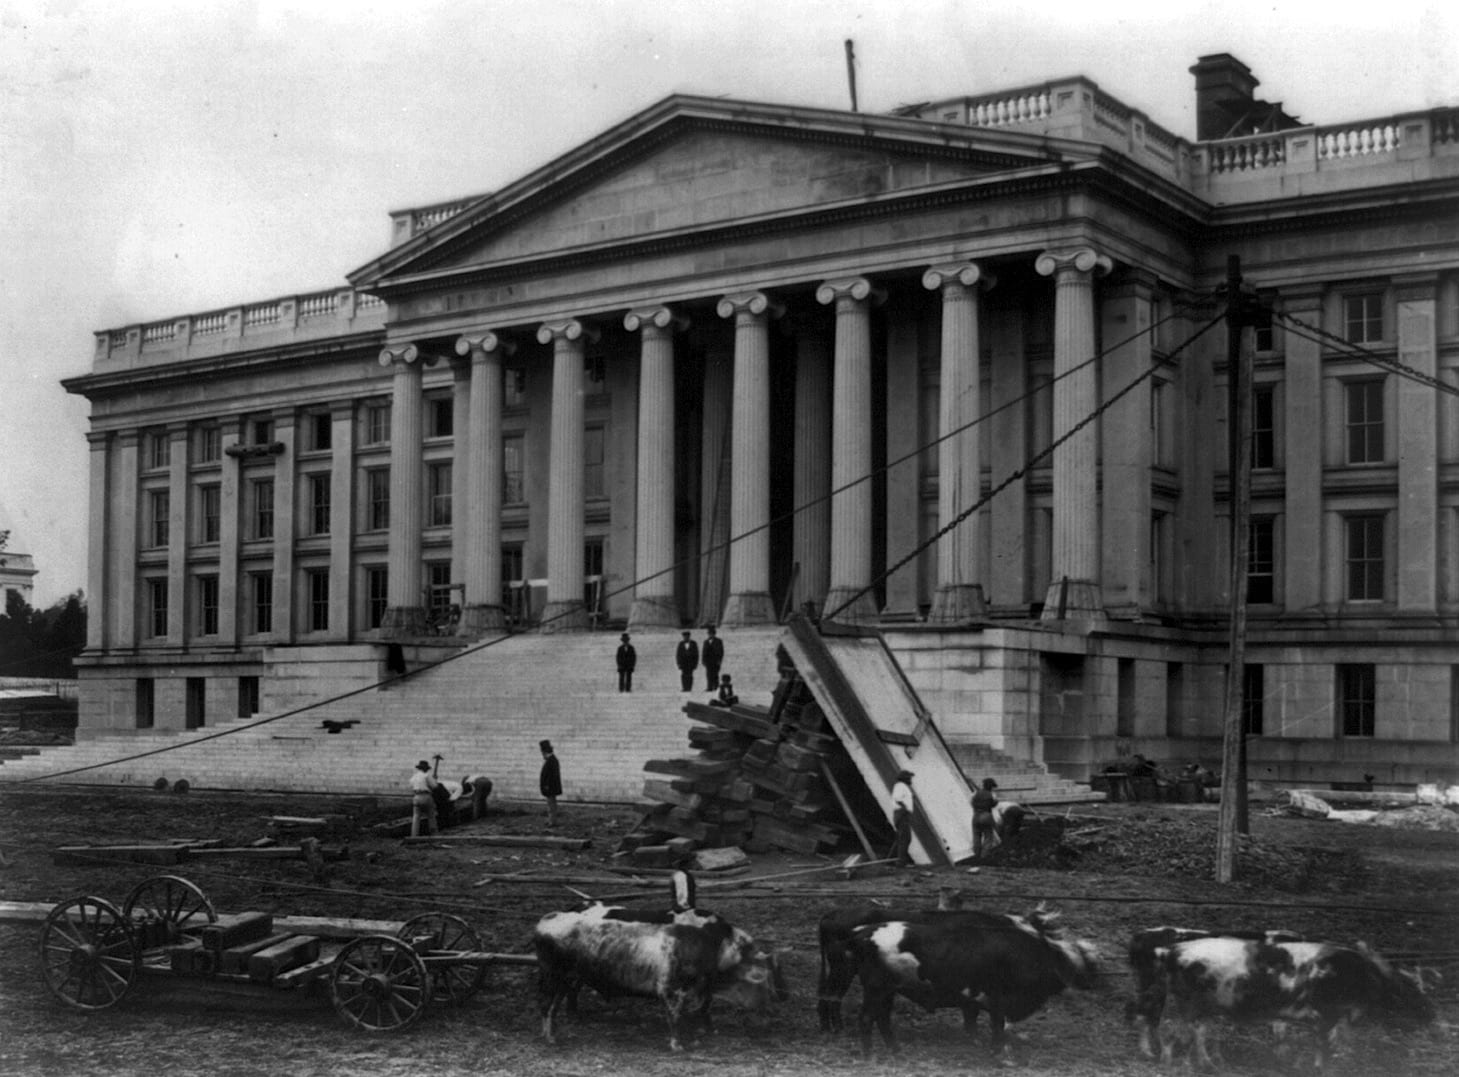 The Treasury Building in 1860, Before the Civil War